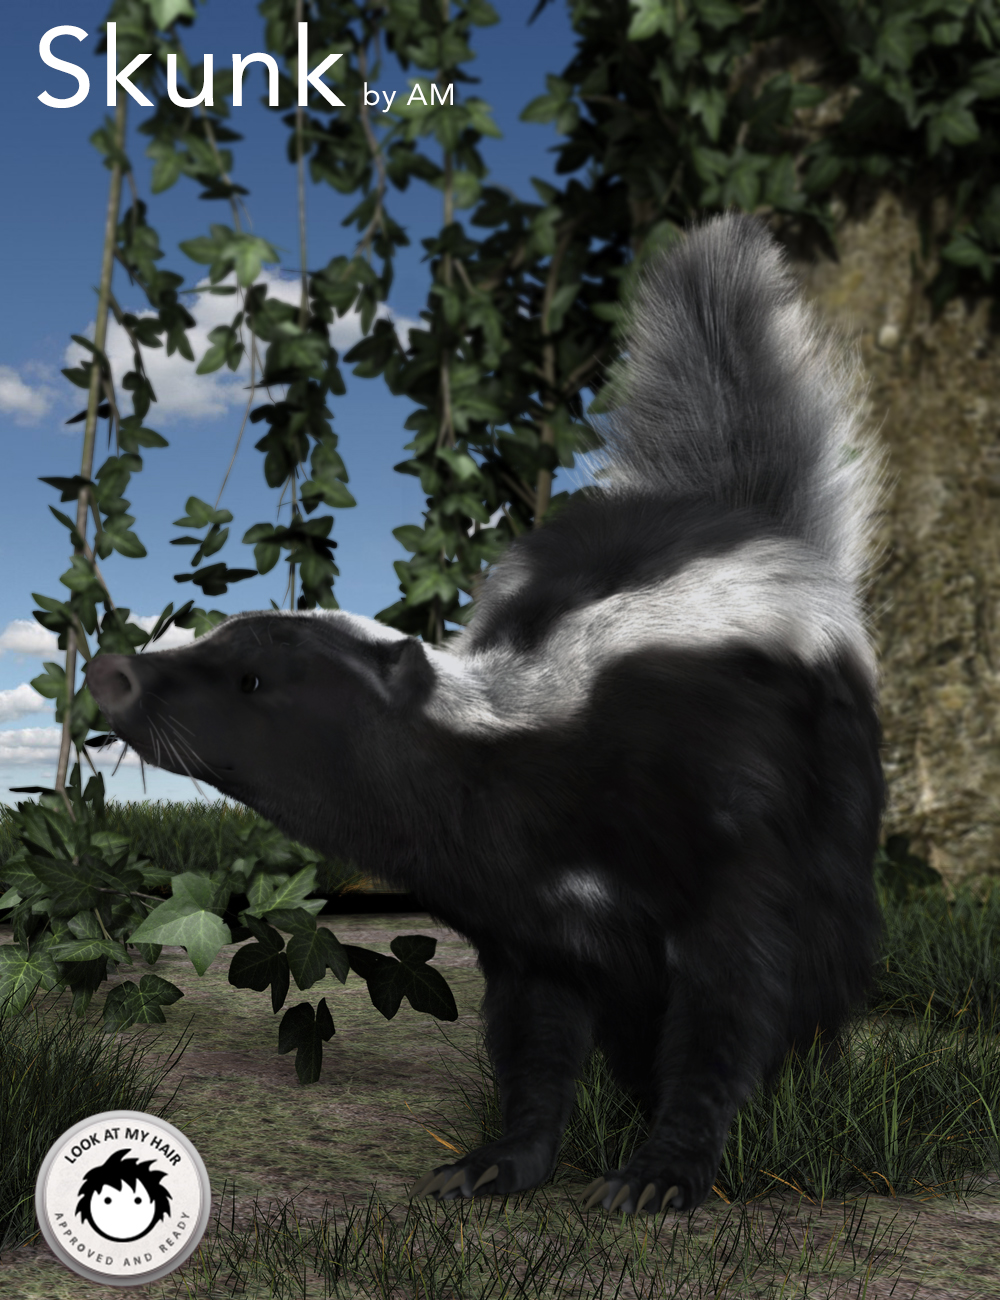 Skunk by AM by: Alessandro_AM, 3D Models by Daz 3D